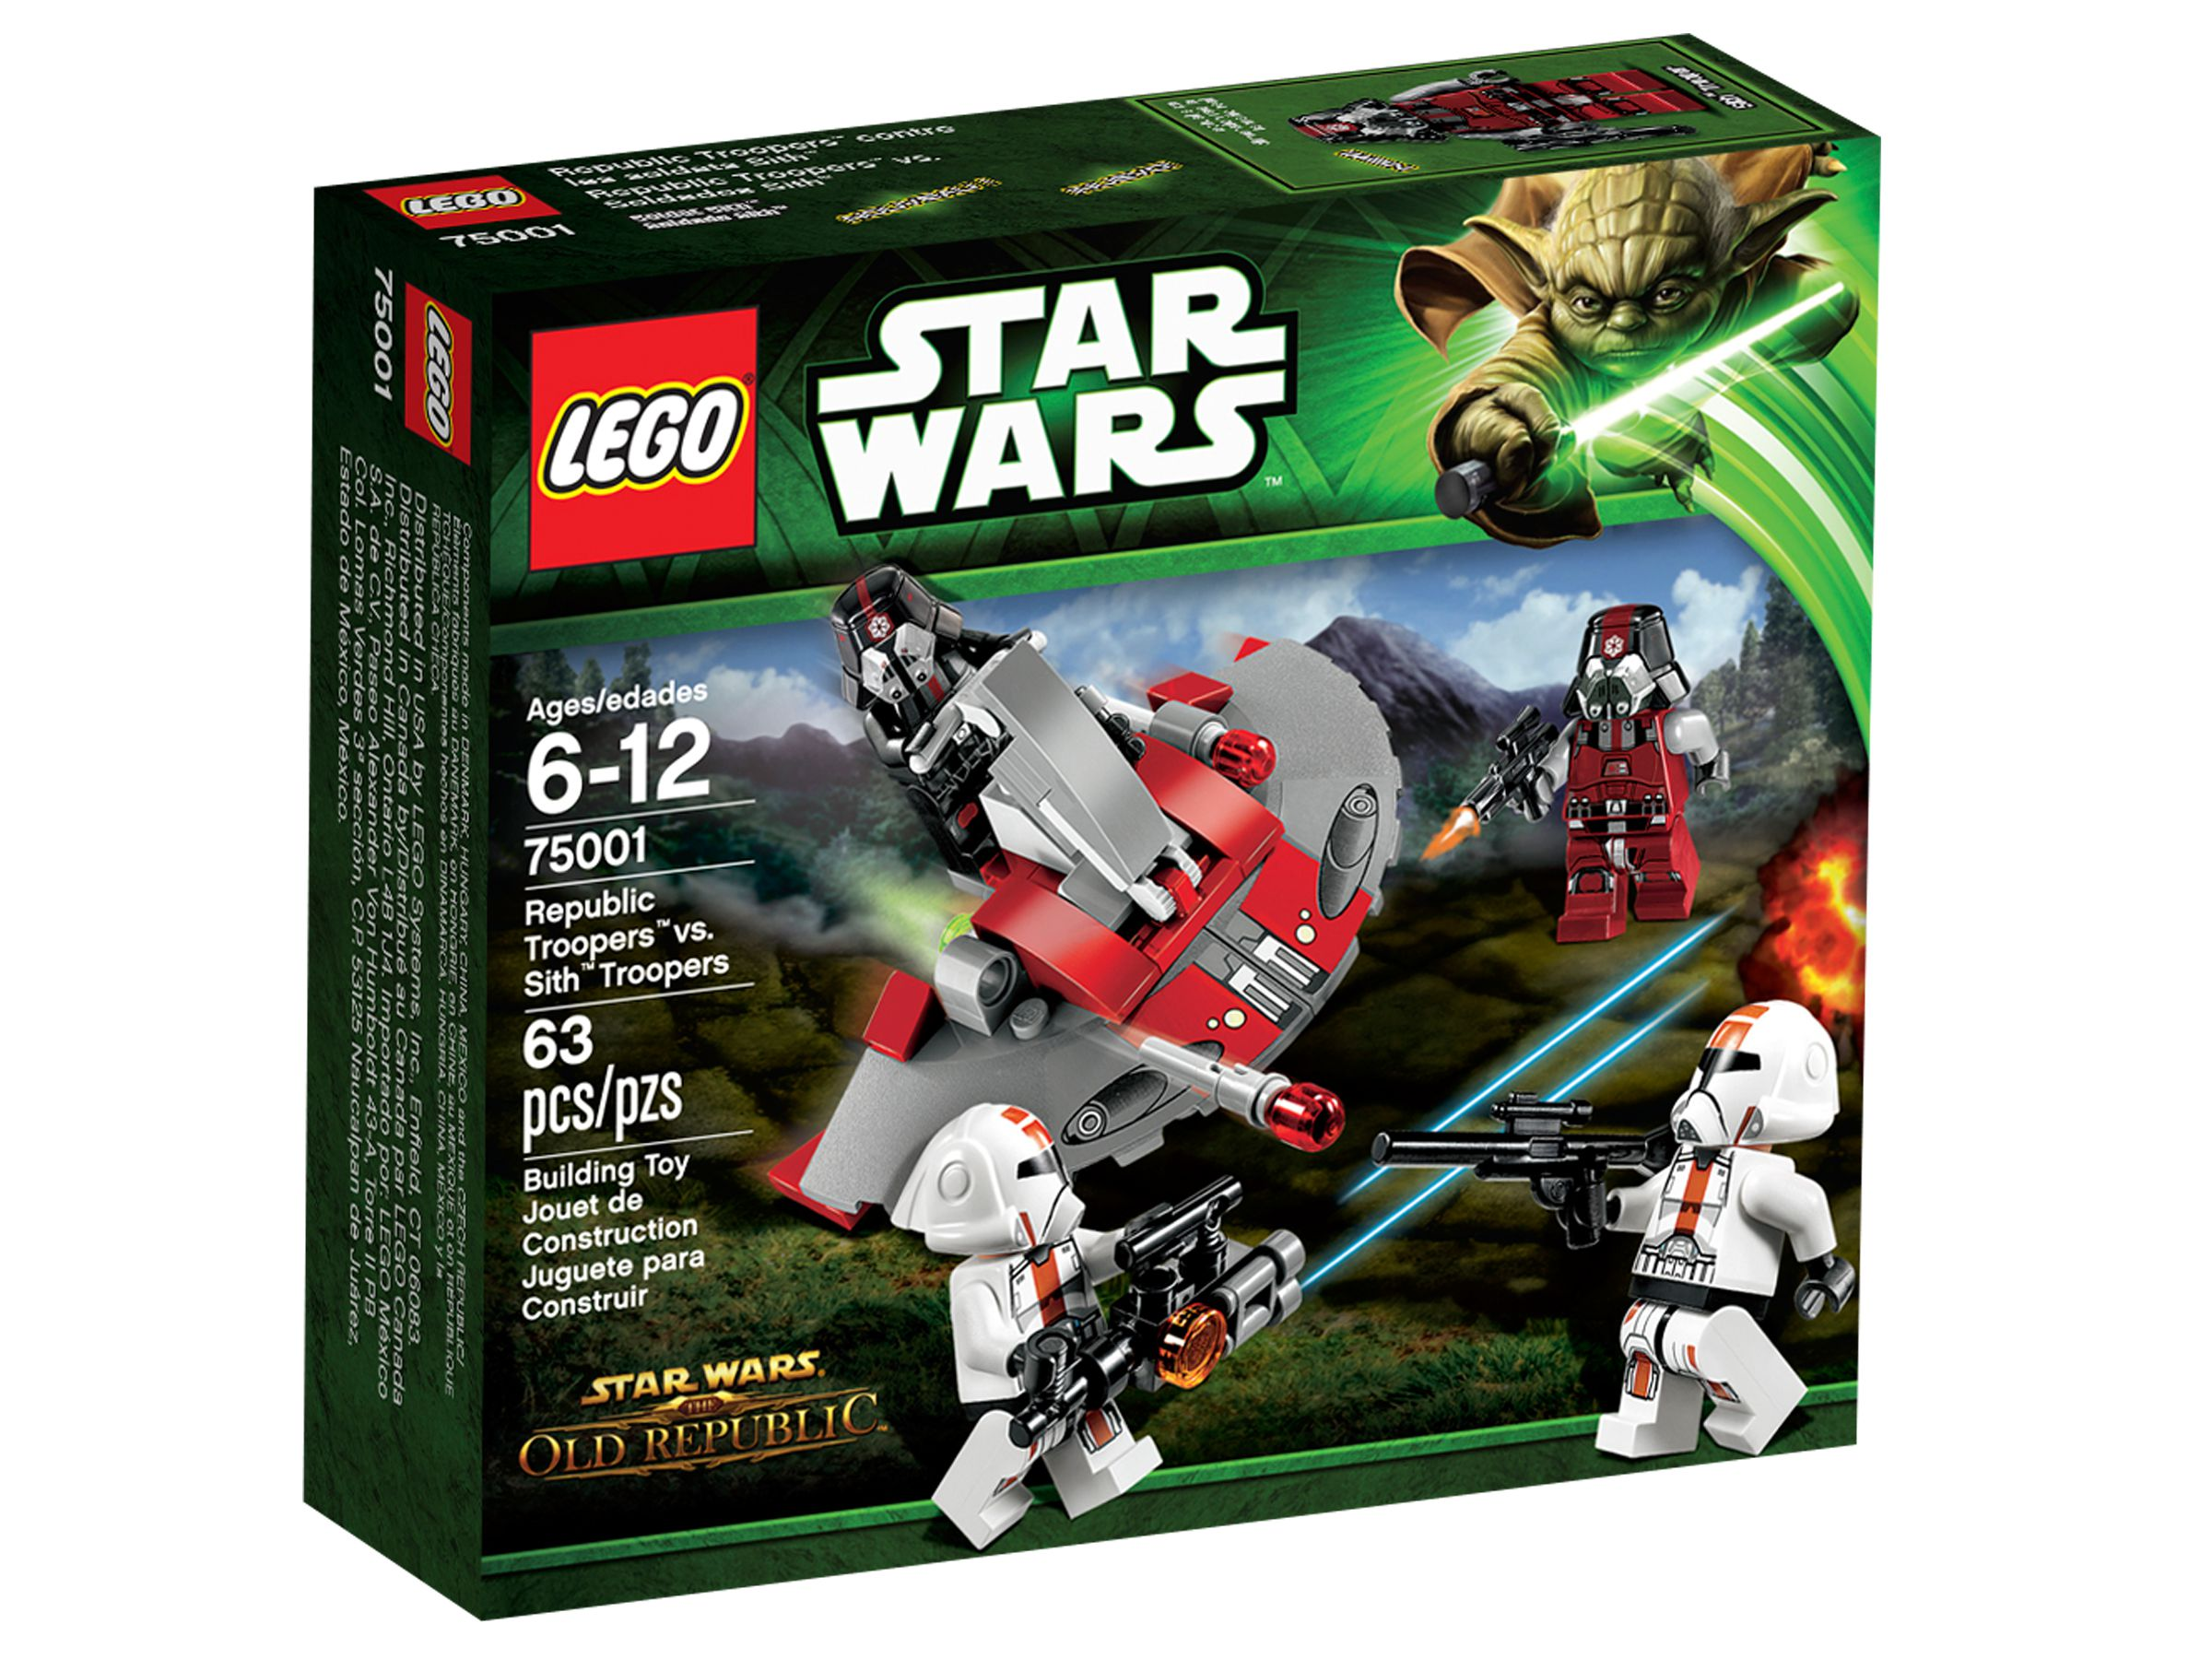 LEGO Star Wars 75001 Republic Troopers™ vs Sith™ Troopers LEGO_75001_alt1.jpg